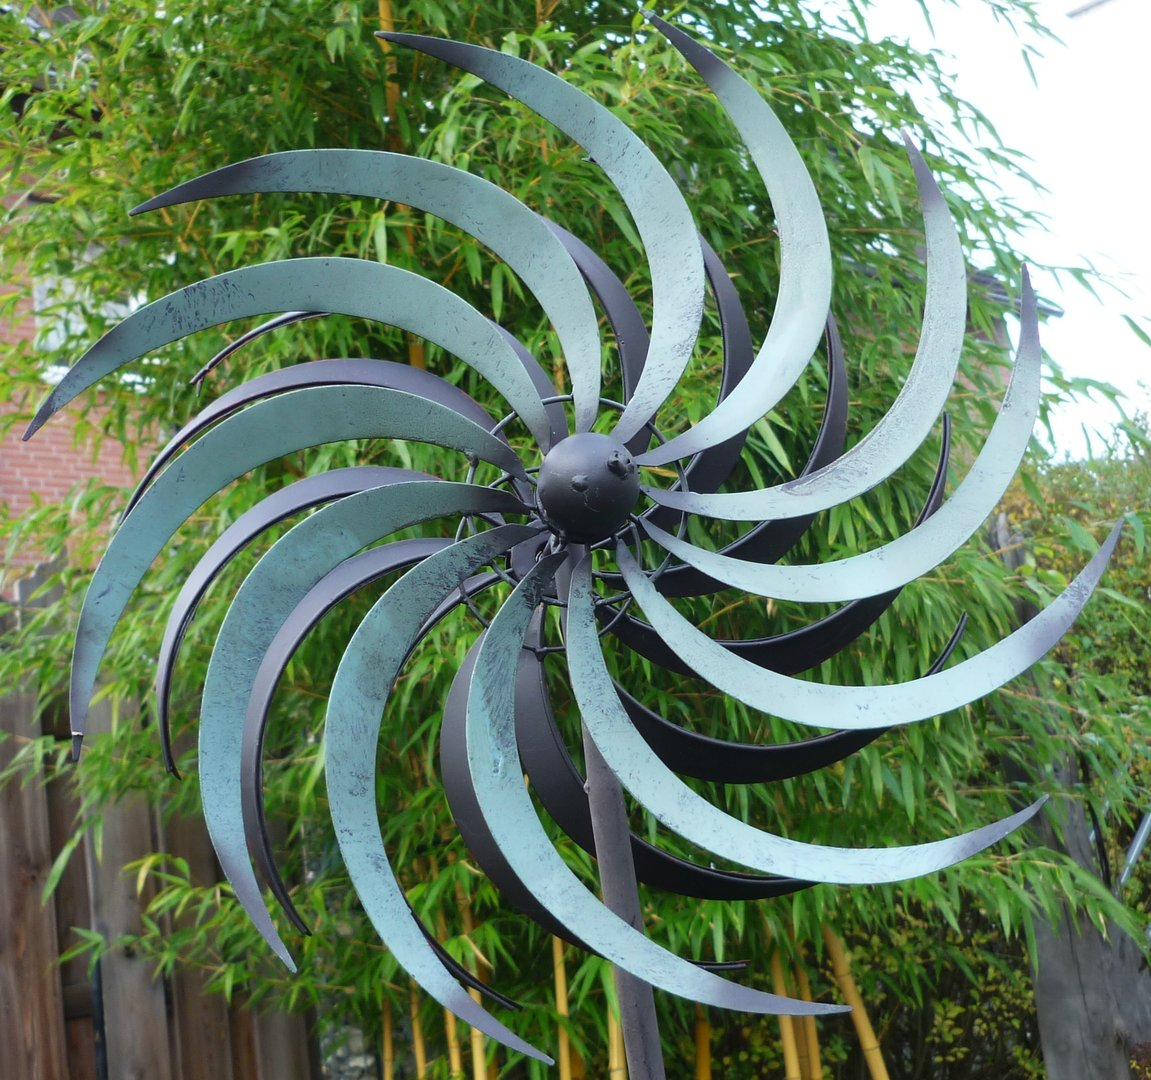 windspiel windrad garten figur metall wind rad sonne gartenlust 175cm gartendekorationen shop. Black Bedroom Furniture Sets. Home Design Ideas